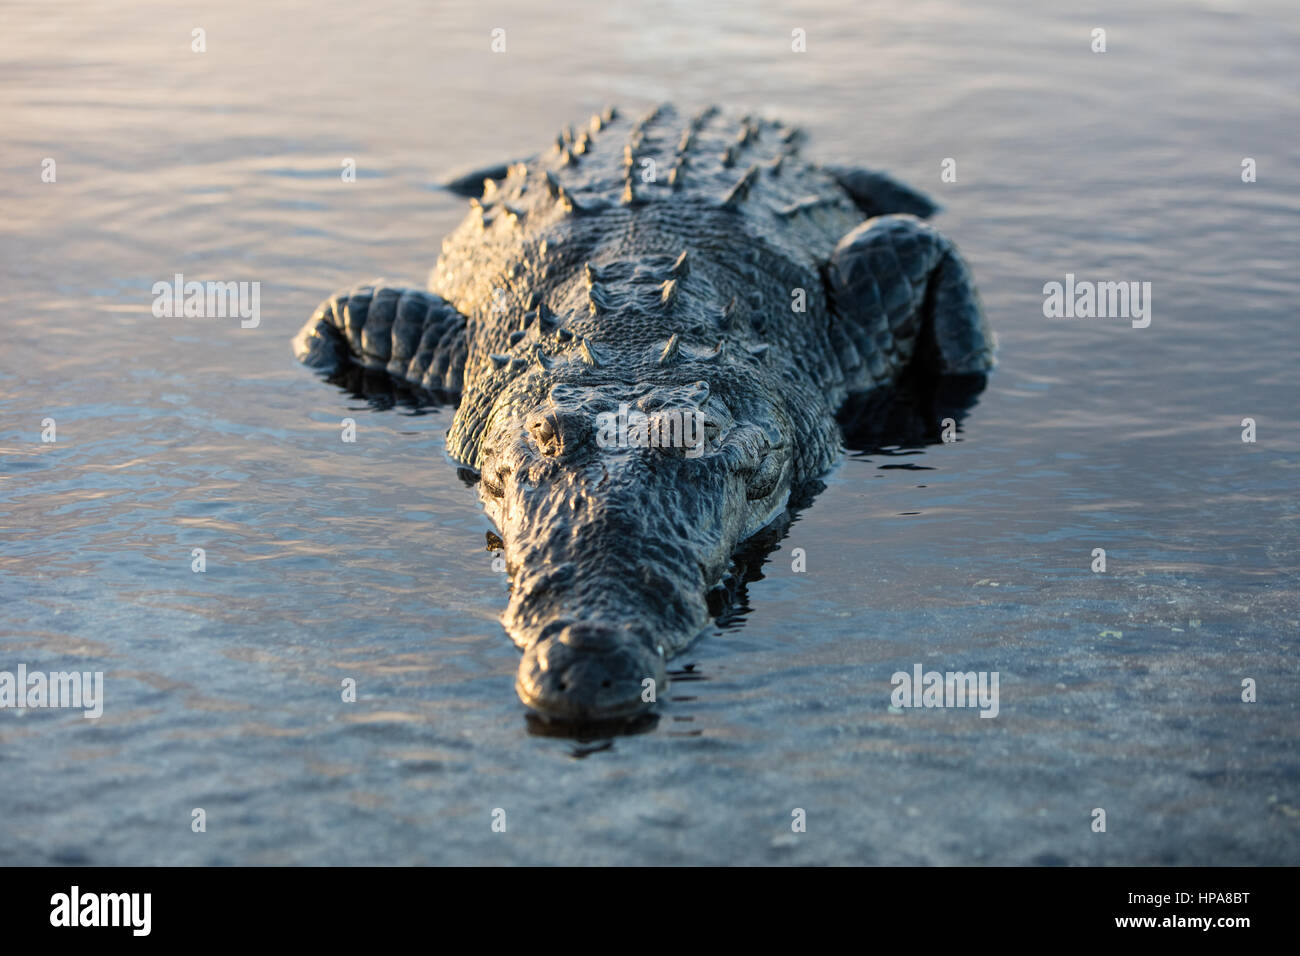 A stealthy American crocodile lies just under the surface of a lagoon off the coast of Belize. These large carnivores Stock Photo